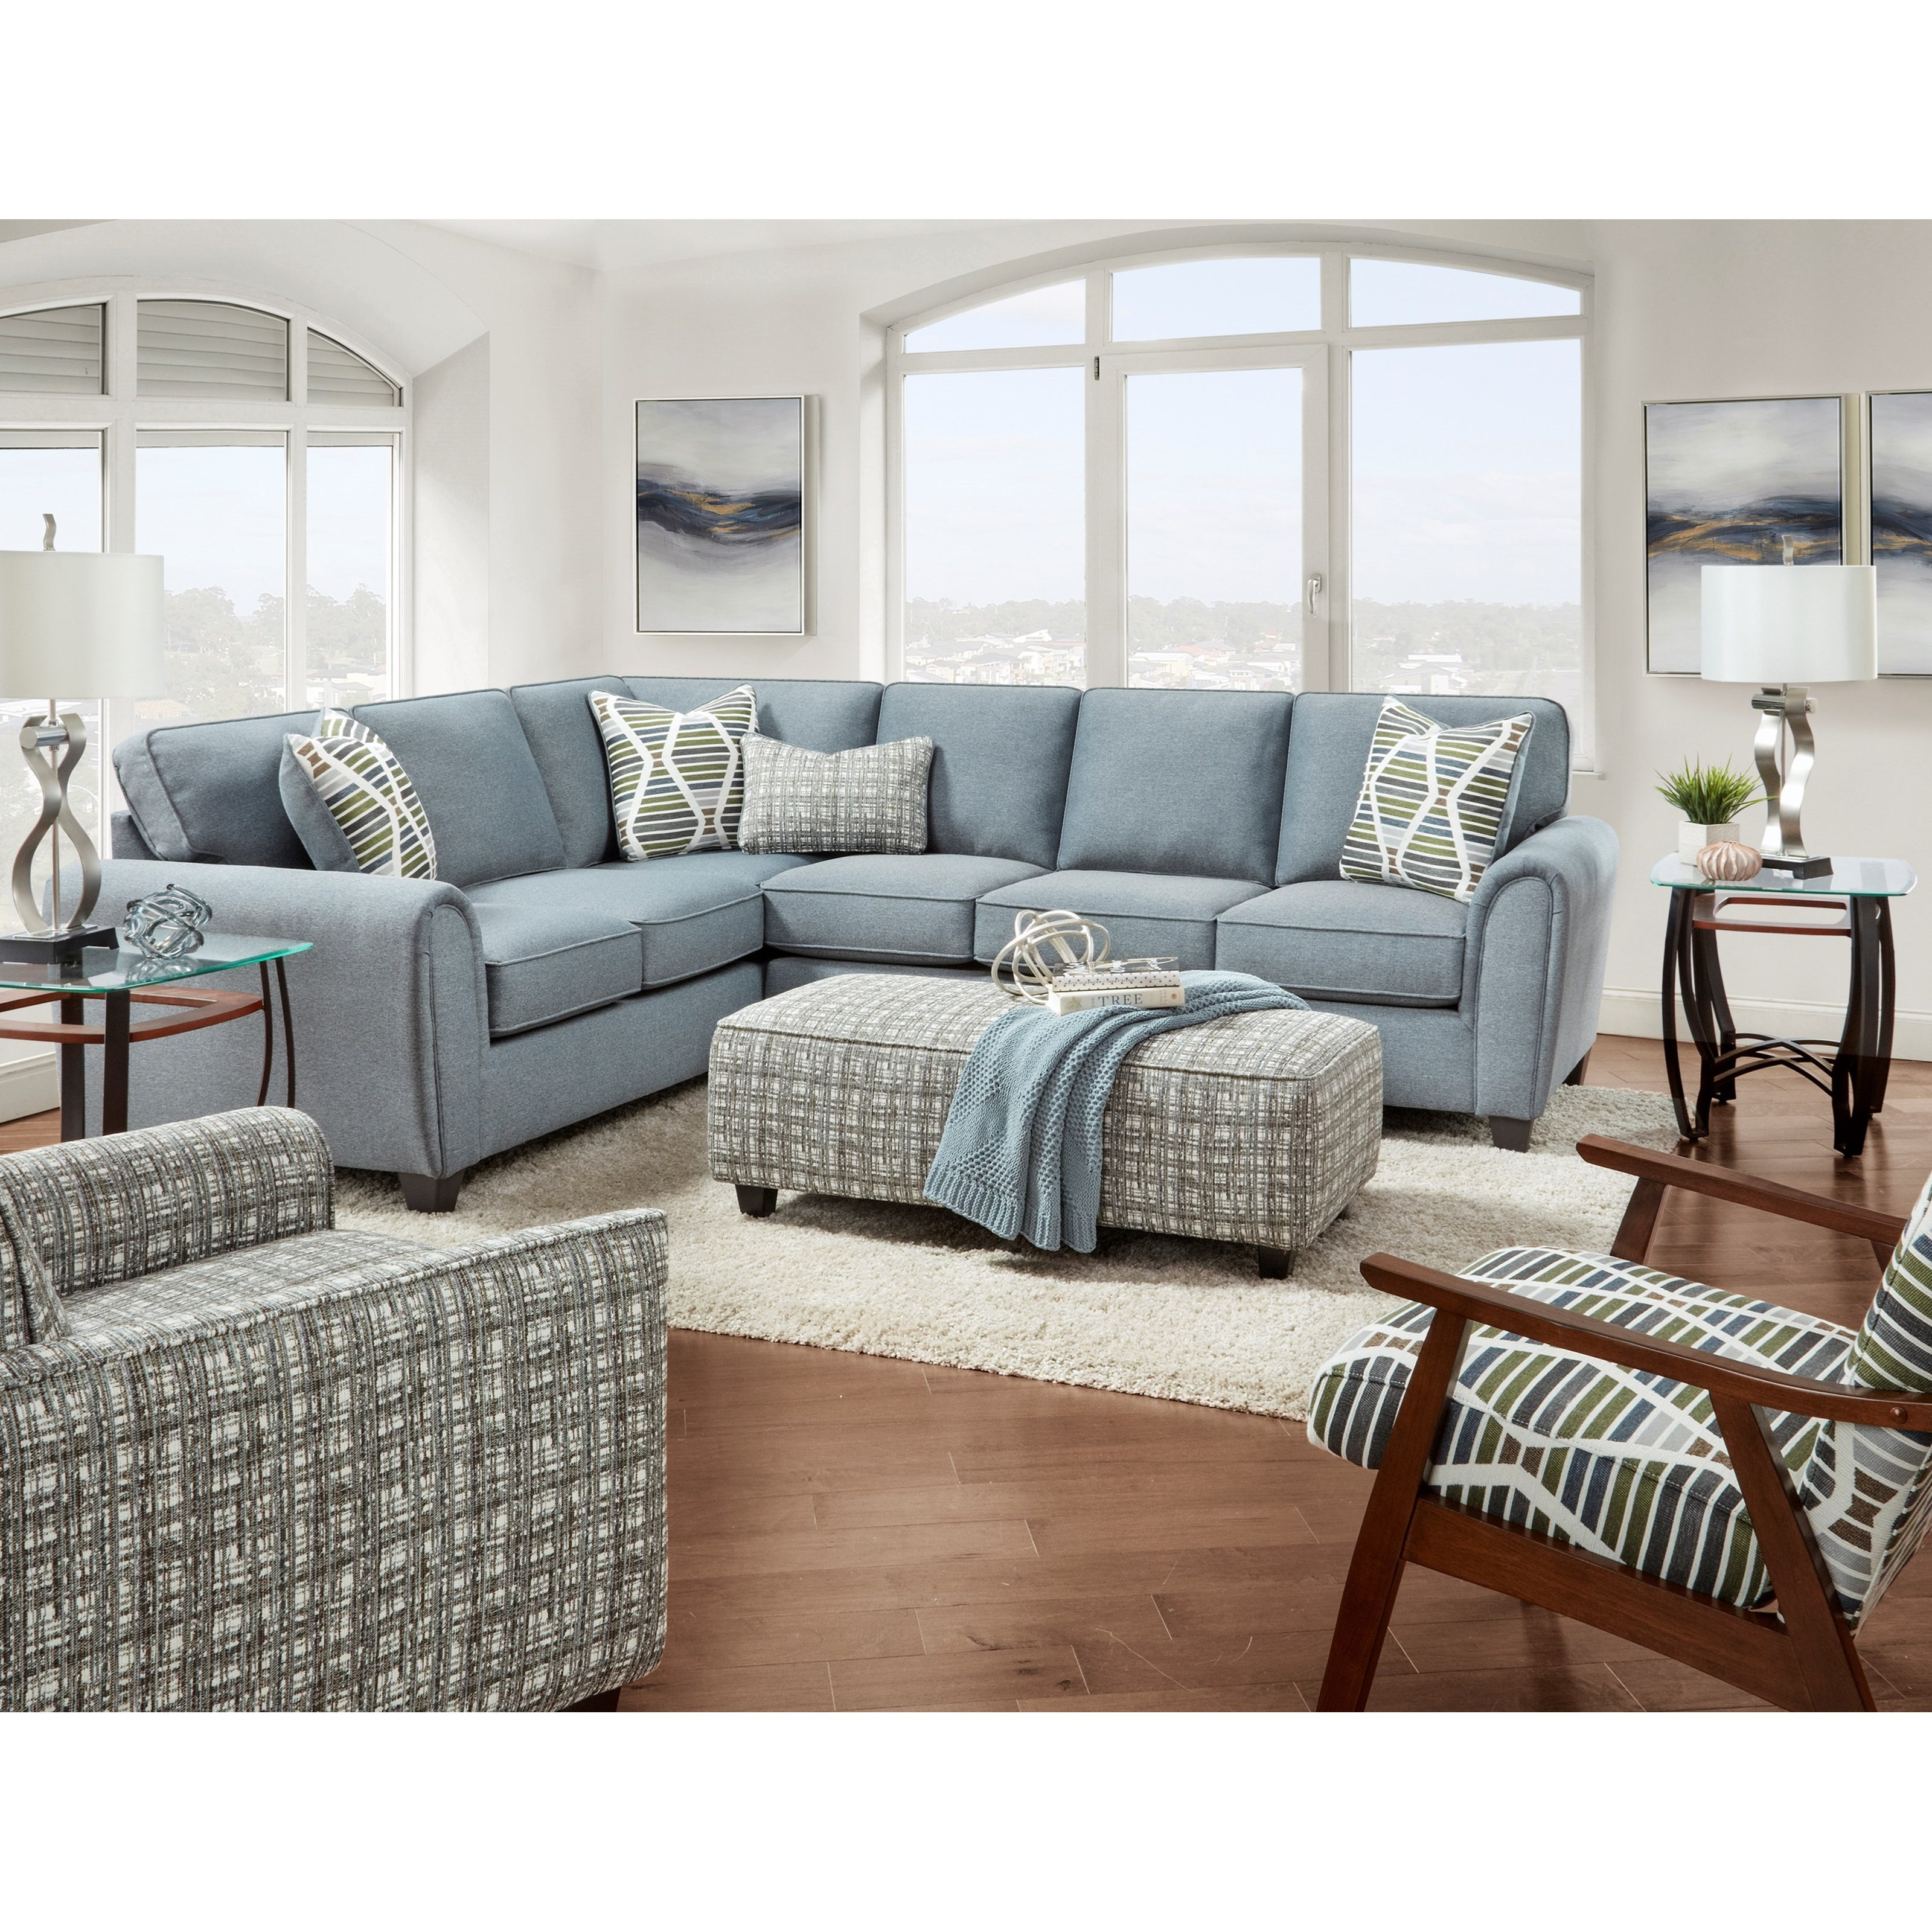 49-00 Living Room Group by Fusion Furniture at Hudson's Furniture